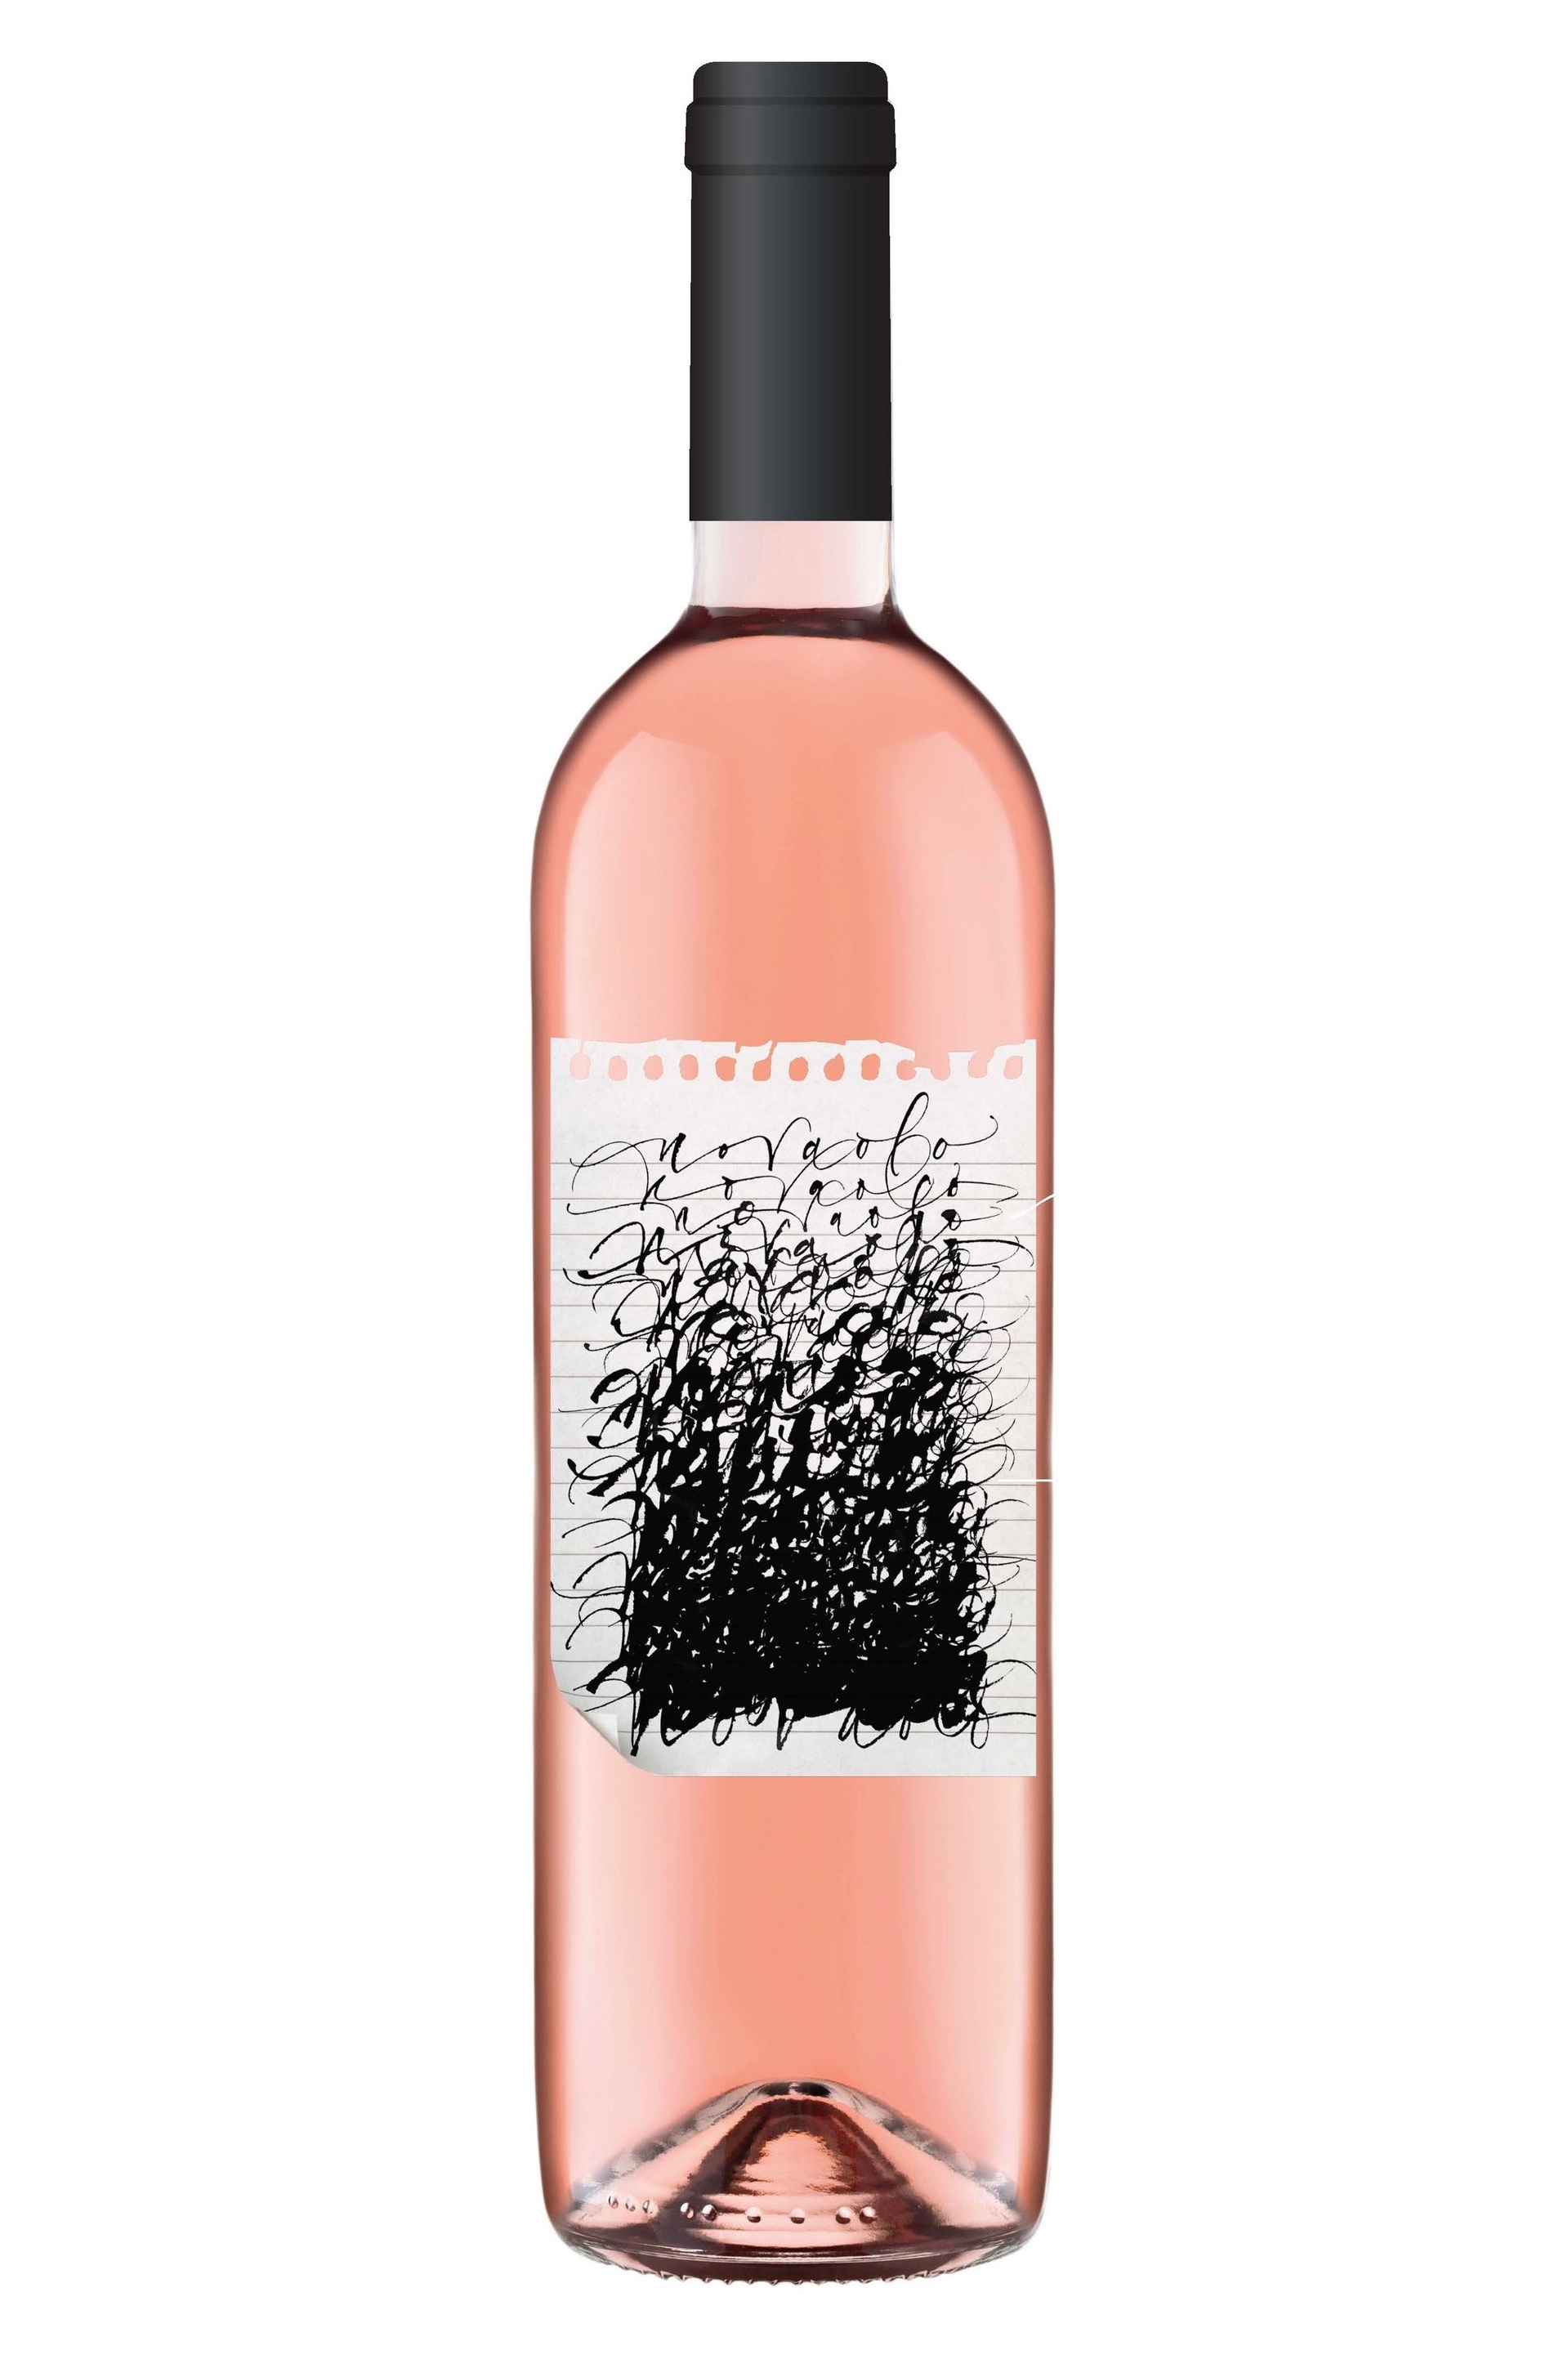 Clarksburg Rosé 2018 - I wanted to create a multi-dimensional rosé, one where you could experience a depth of flavor while still enjoy a refreshing wine on a summer day. I created a proprietary blend of tempranillo, mourvedre, grenache, cabernet sauvignon, and pinot noir for this endlessly sippable wine.With Love & Gratitude,Kristin$26